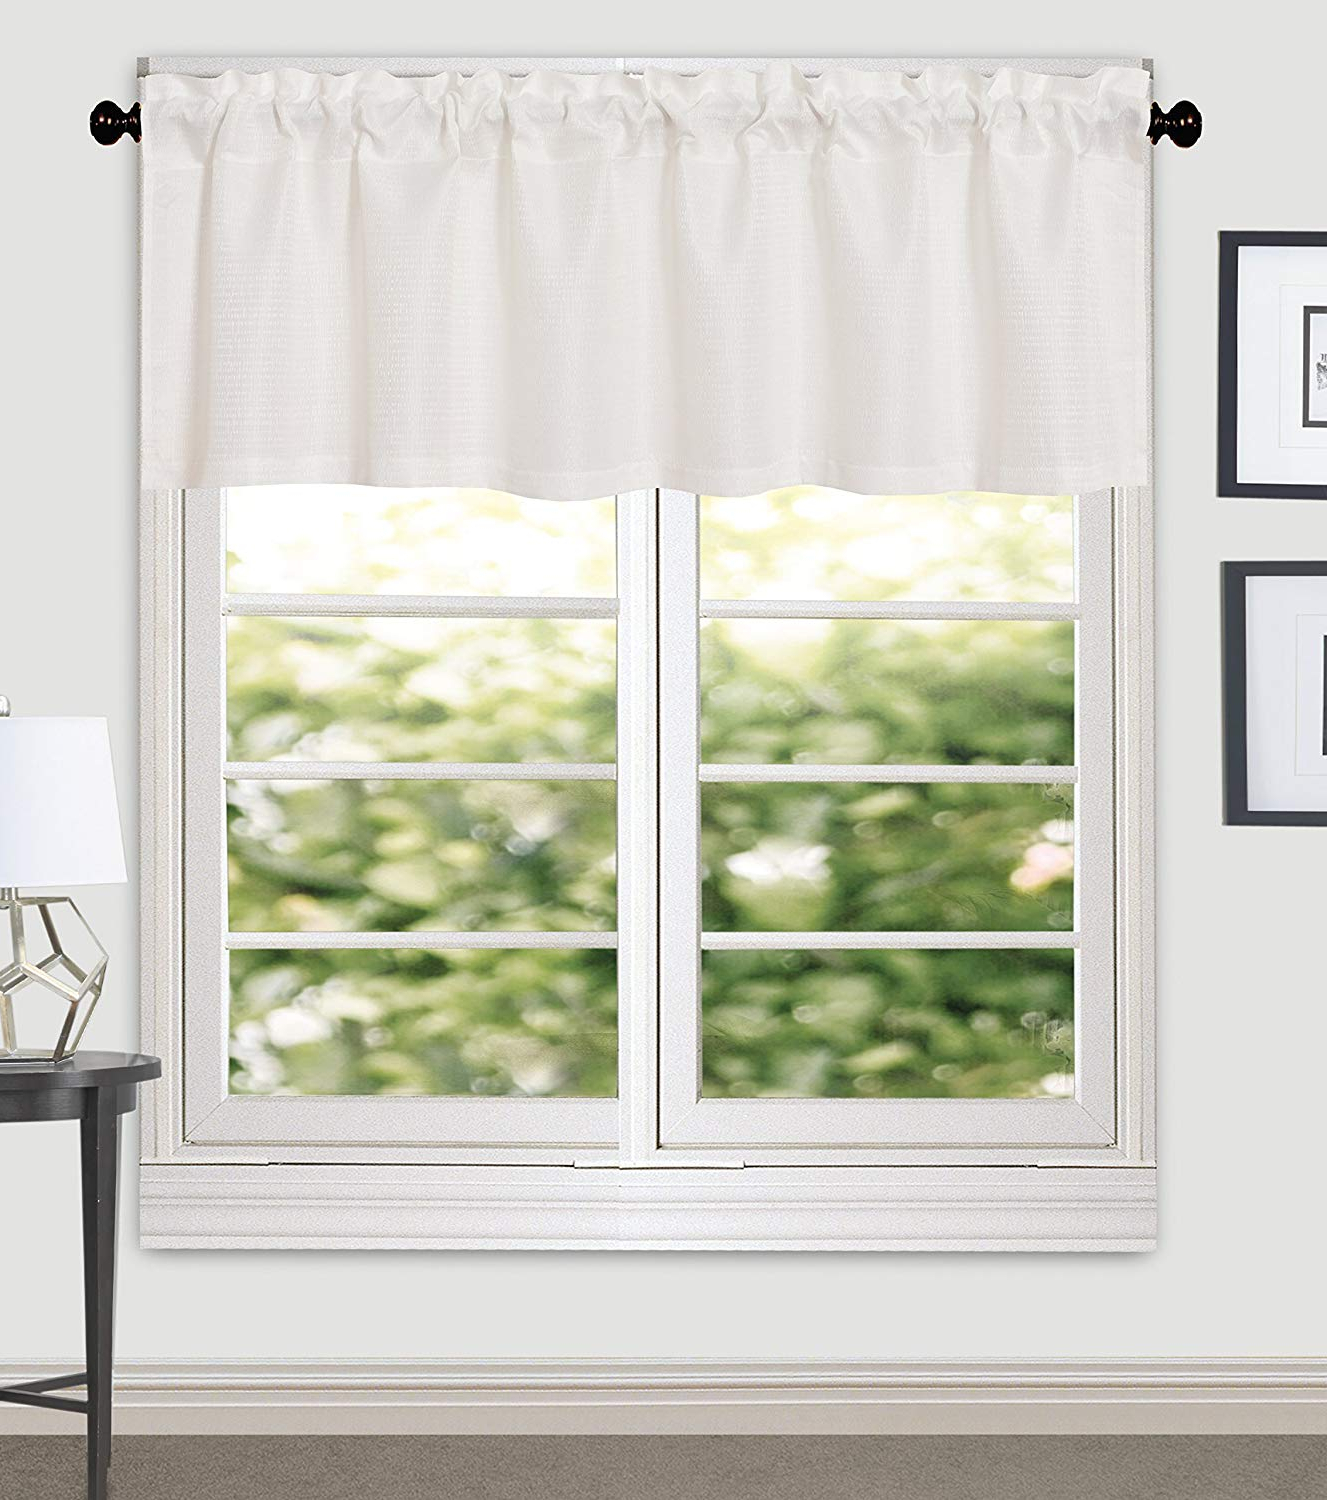 Aiking Home Crystal Jacquard Window Valance, 5616 Inches, Pure White Within Most Up To Date Luxury Light Filtering Straight Curtain Valances (View 1 of 20)